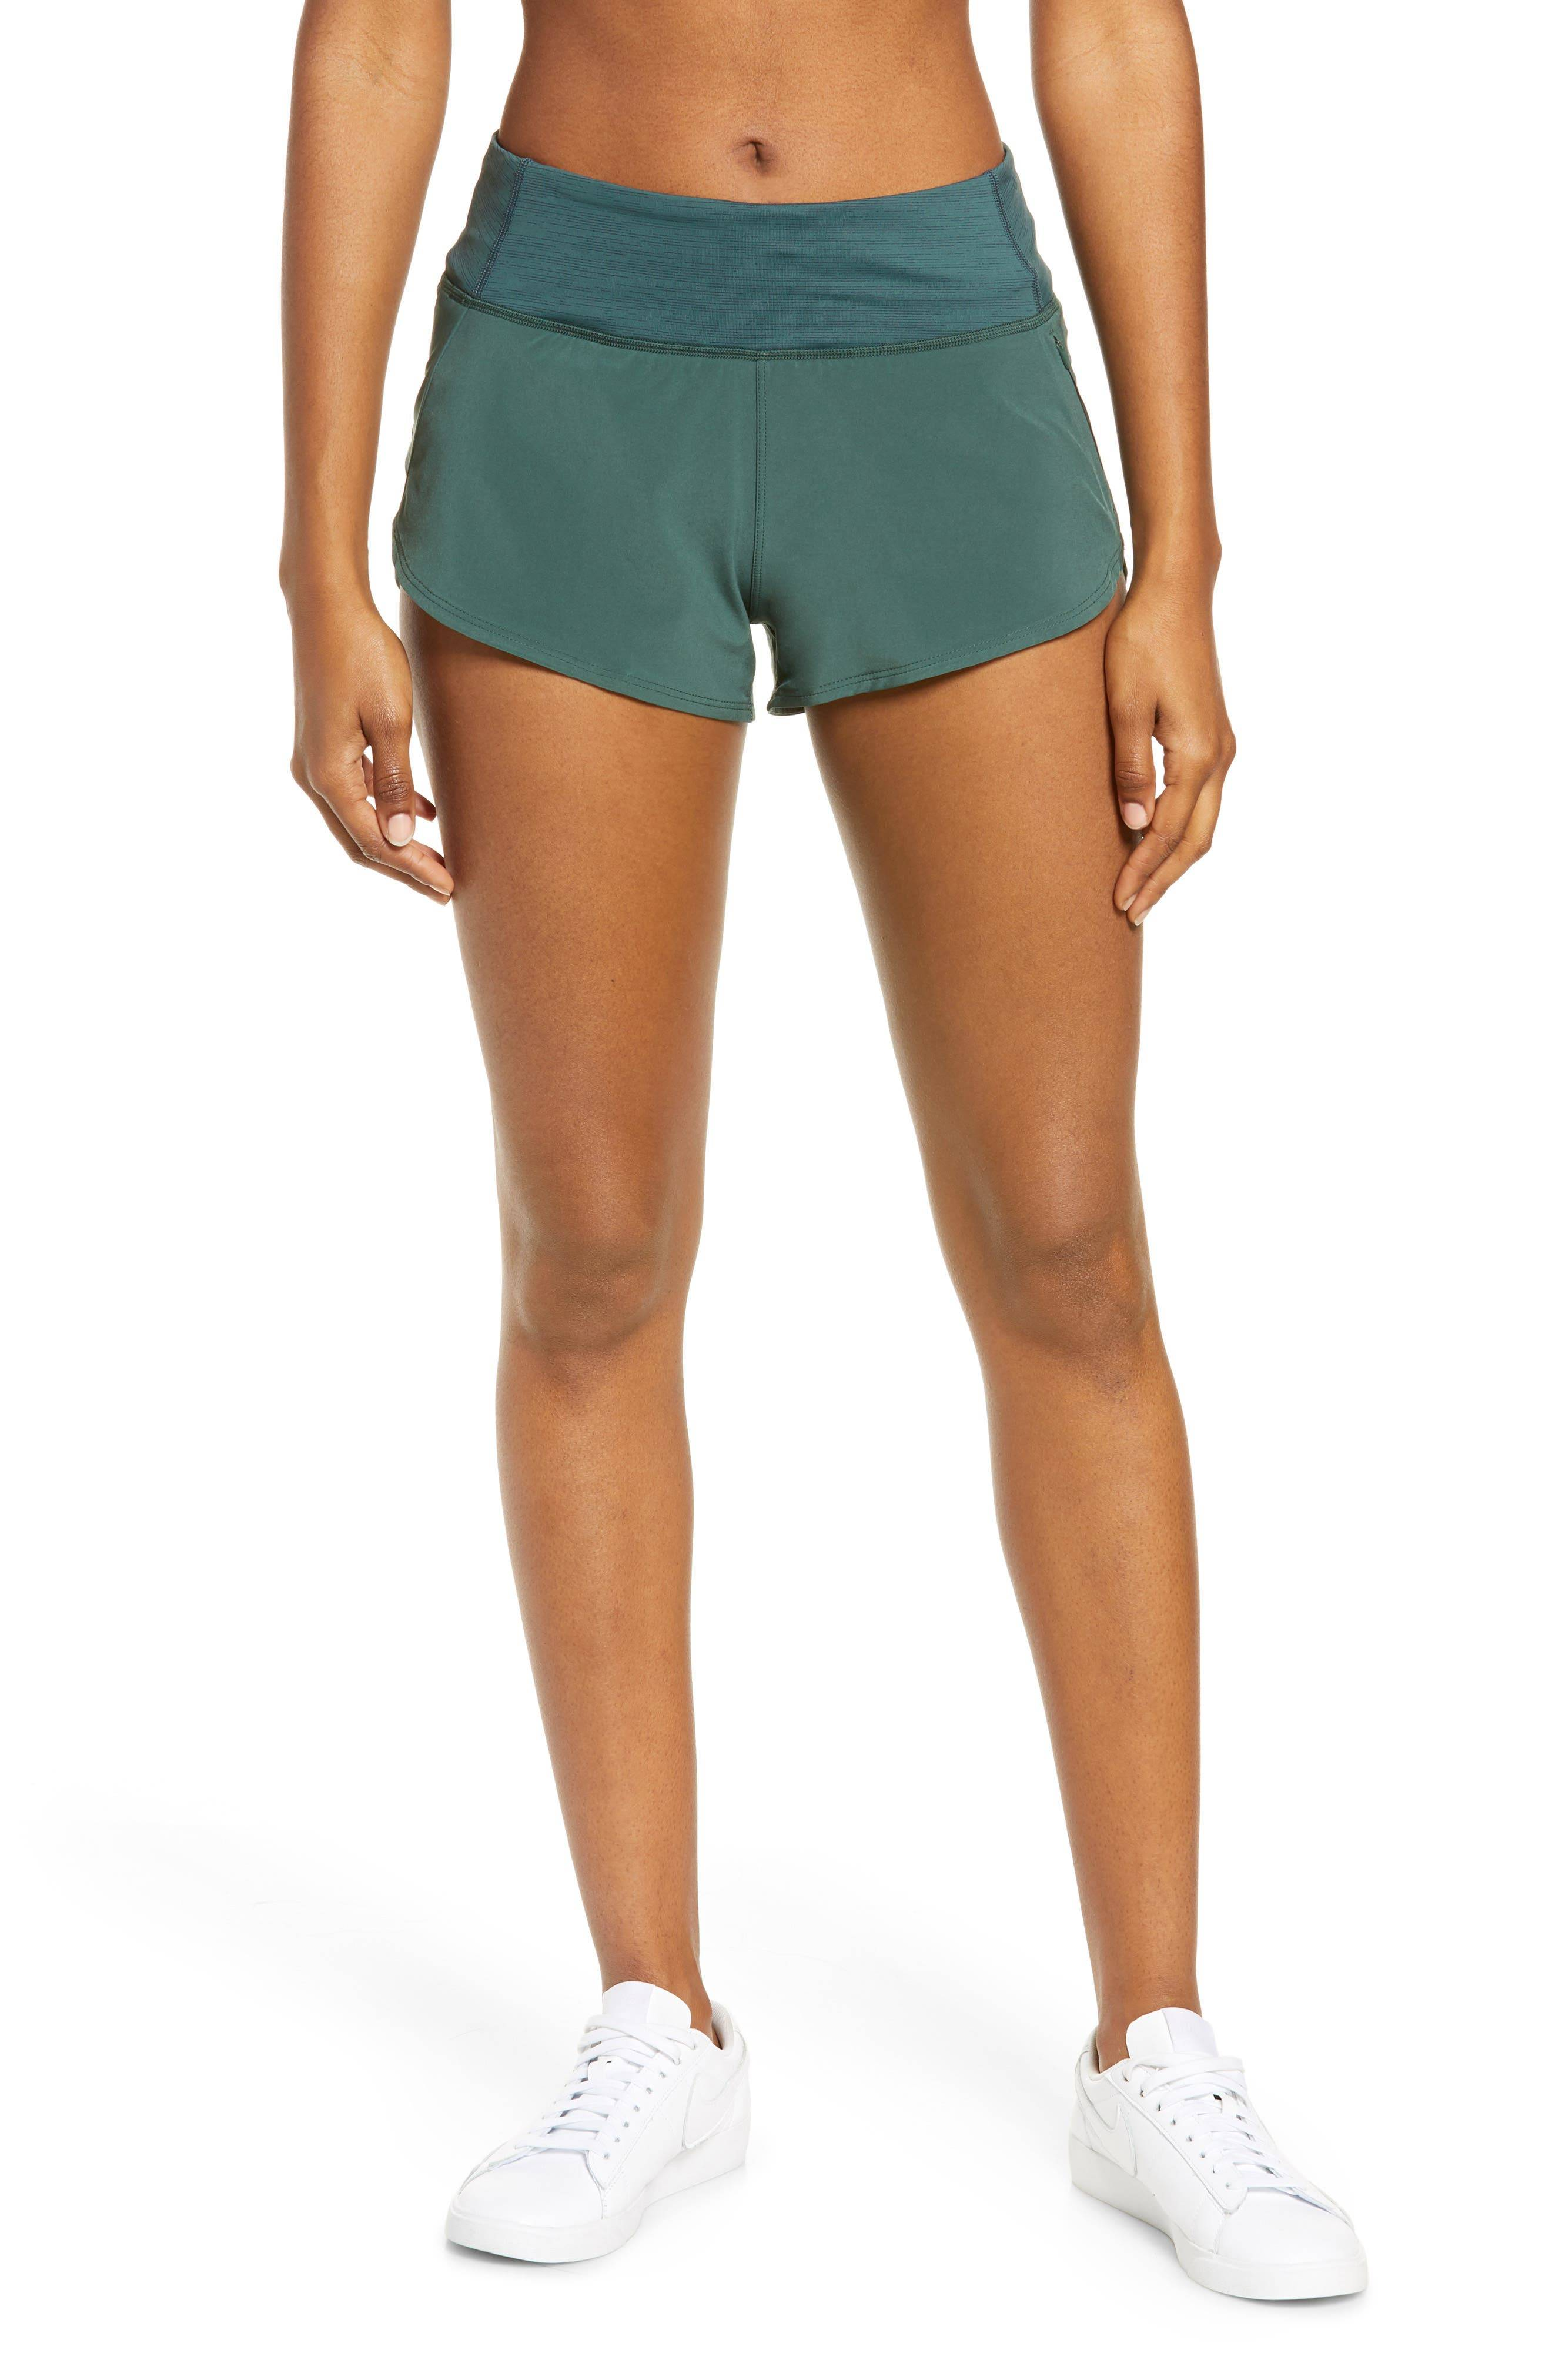 Outdoor Voices Women's Outdoor Voices Hudson Shorts, Size Small - Green